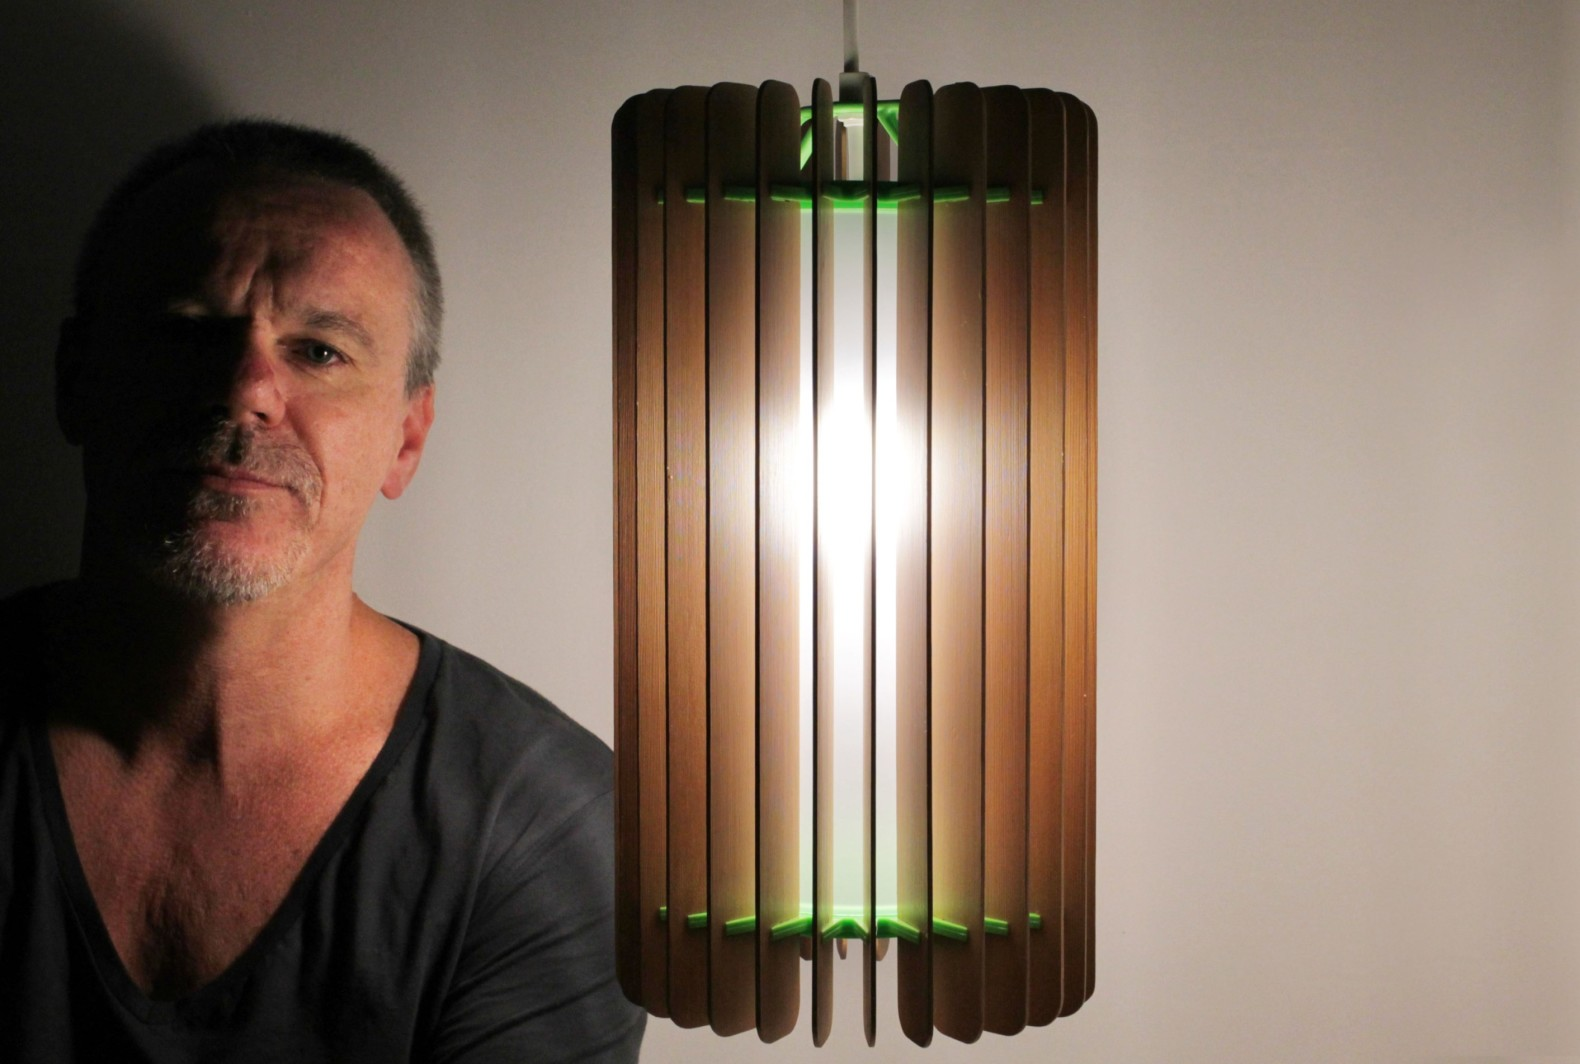 Avalon upcycled lighting by Adrian Lawson, wooden venetian blind lighting, turning blinds into lamps, pendant lamps recycling, recycled materials in lights,